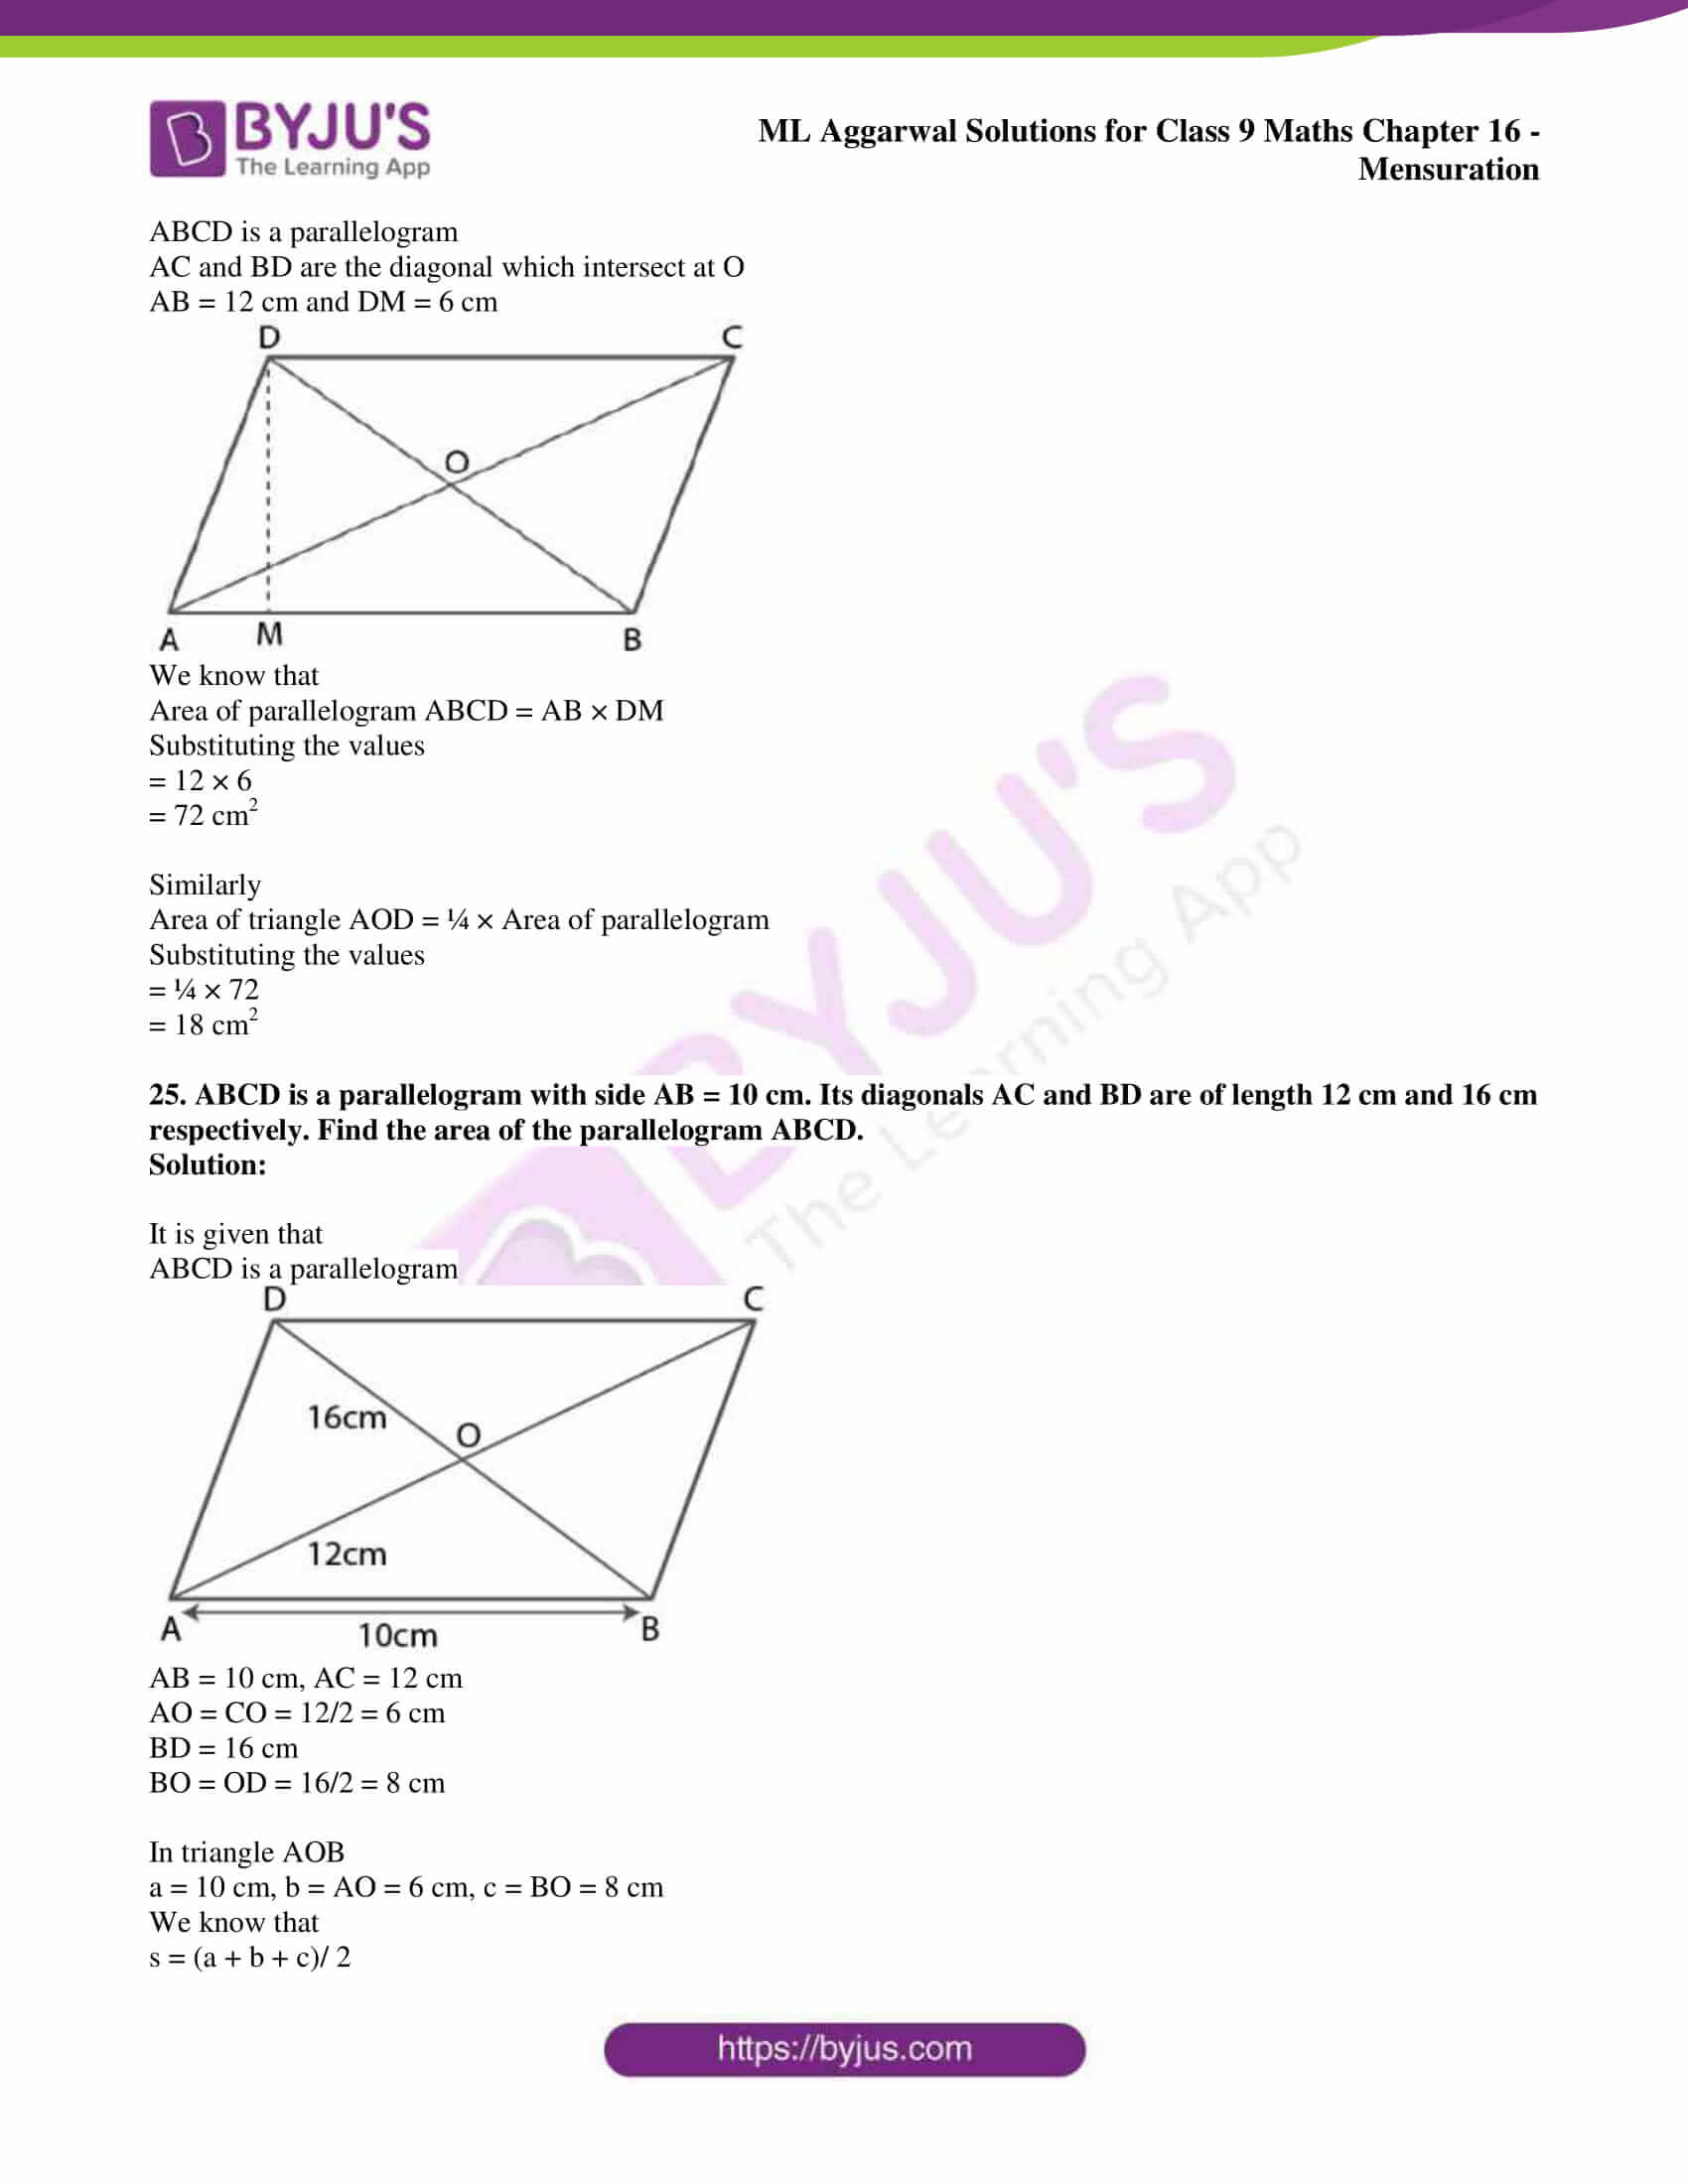 ml aggarwal solutions for class 9 maths chapter 16 048